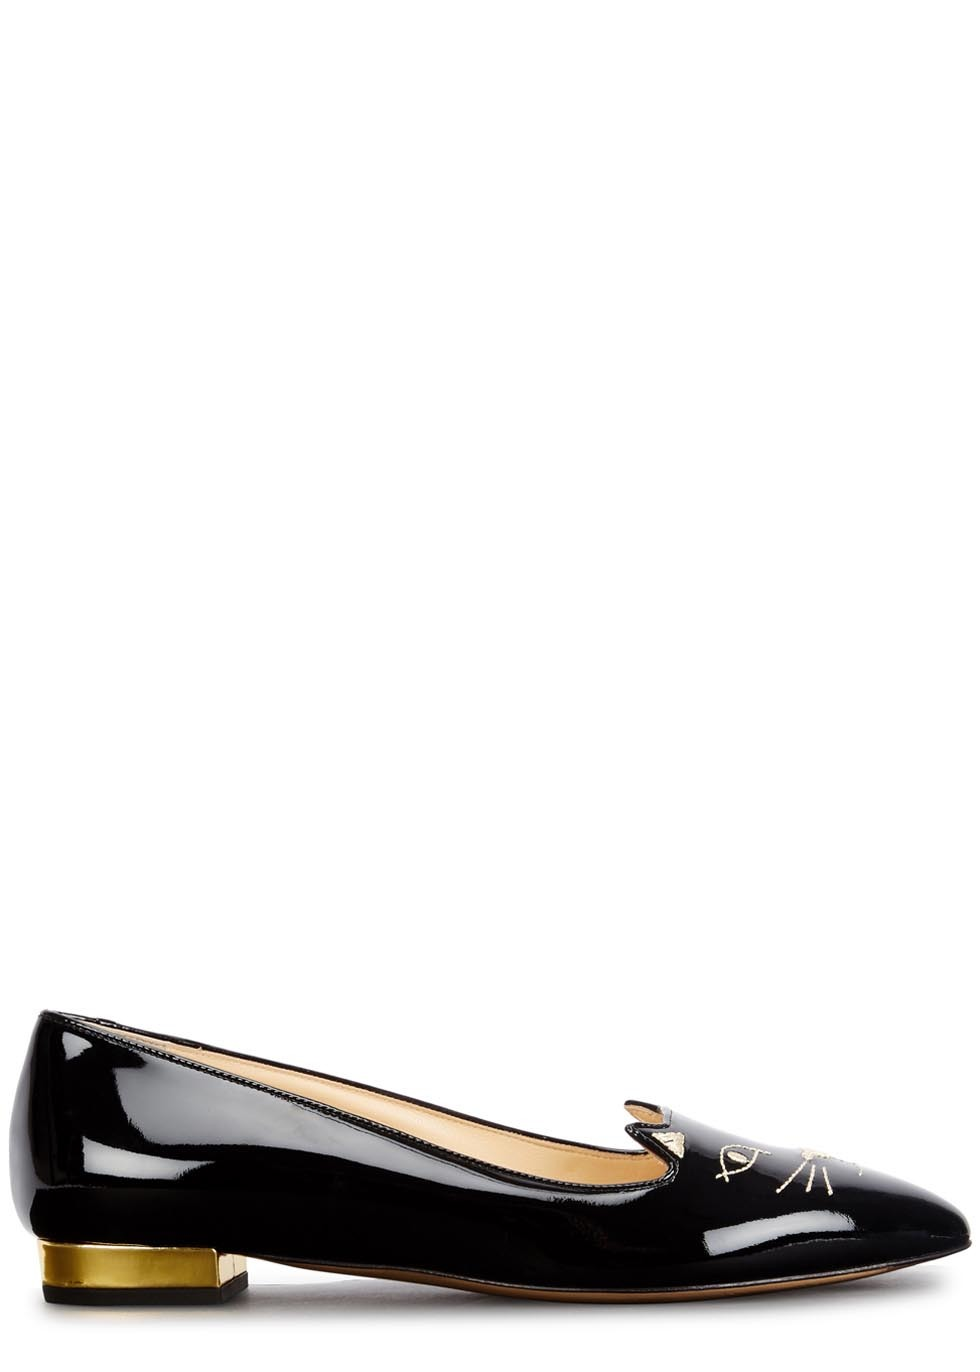 Mid Century Kitty Black Patent Leather Flats - secondary colour: gold; predominant colour: black; occasions: casual, creative work; material: leather; heel height: flat; embellishment: embroidered; toe: round toe; style: ballerinas / pumps; finish: patent; pattern: plain; season: a/w 2015